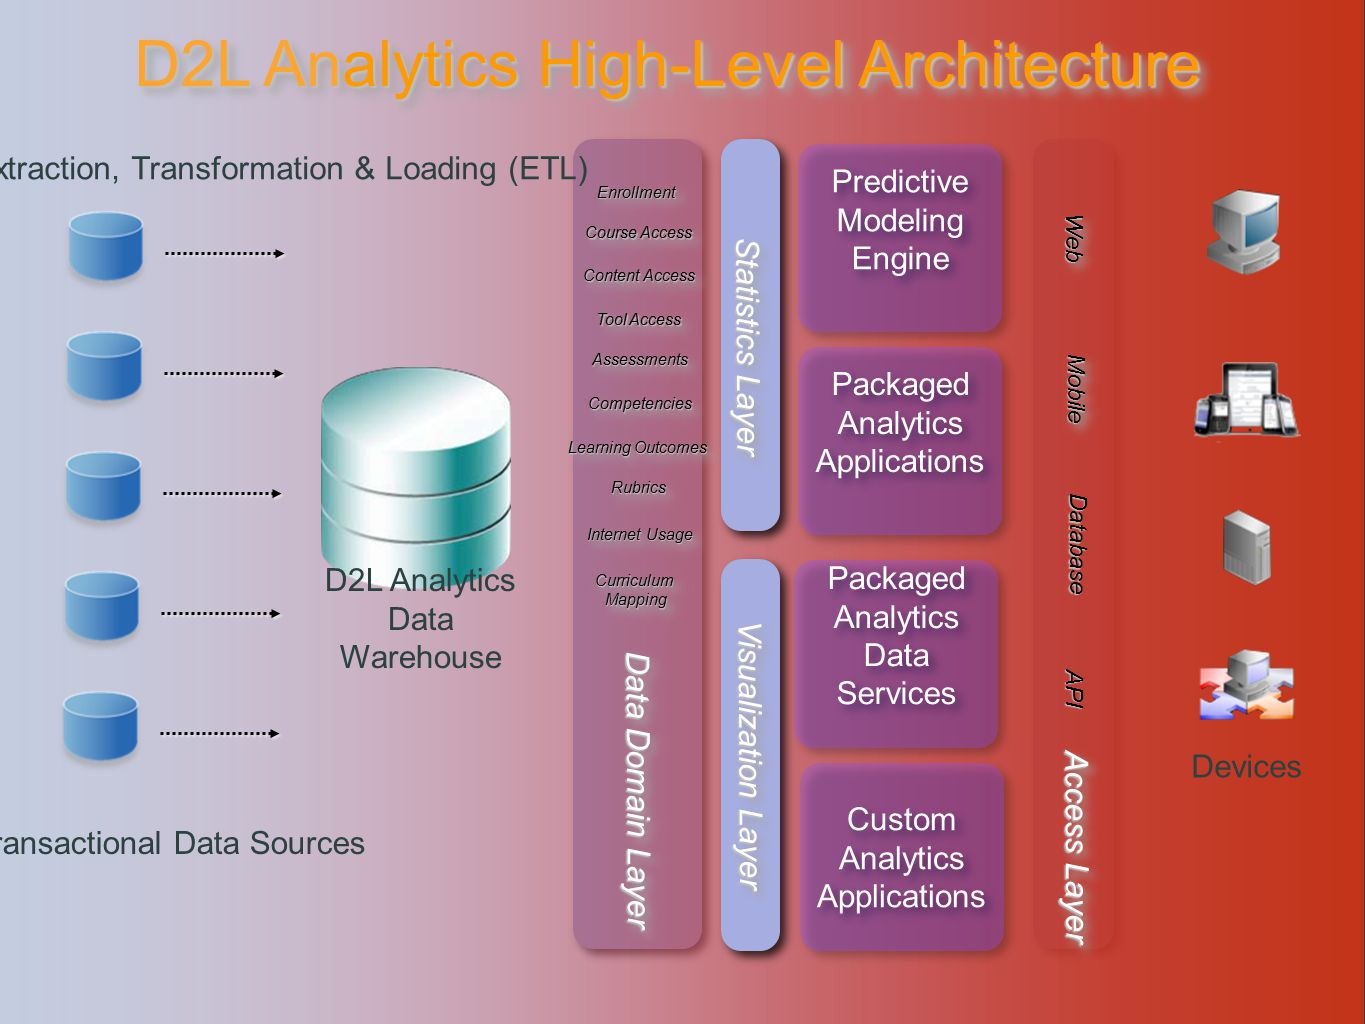 Predictive Modeling Engine Predictive Modeling Engine Packaged Analytics Applications Visualization Layer Packaged Analytics Data Services Custom Analytics Applications Custom Analytics Applications WebWeb MobileMobile Database API Access Layer Data Domain Layer Statistics Layer Extraction, Transformation & Loading (ETL) Transactional Data Sources D2L Analytics Data Warehouse EnrollmentEnrollment Course Access Content Access Tool Access AssessmentsAssessments Learning Outcomes RubricsRubrics Internet Usage Curriculum Mapping CompetenciesCompetencies D2L Analytics High-Level Architecture Devices